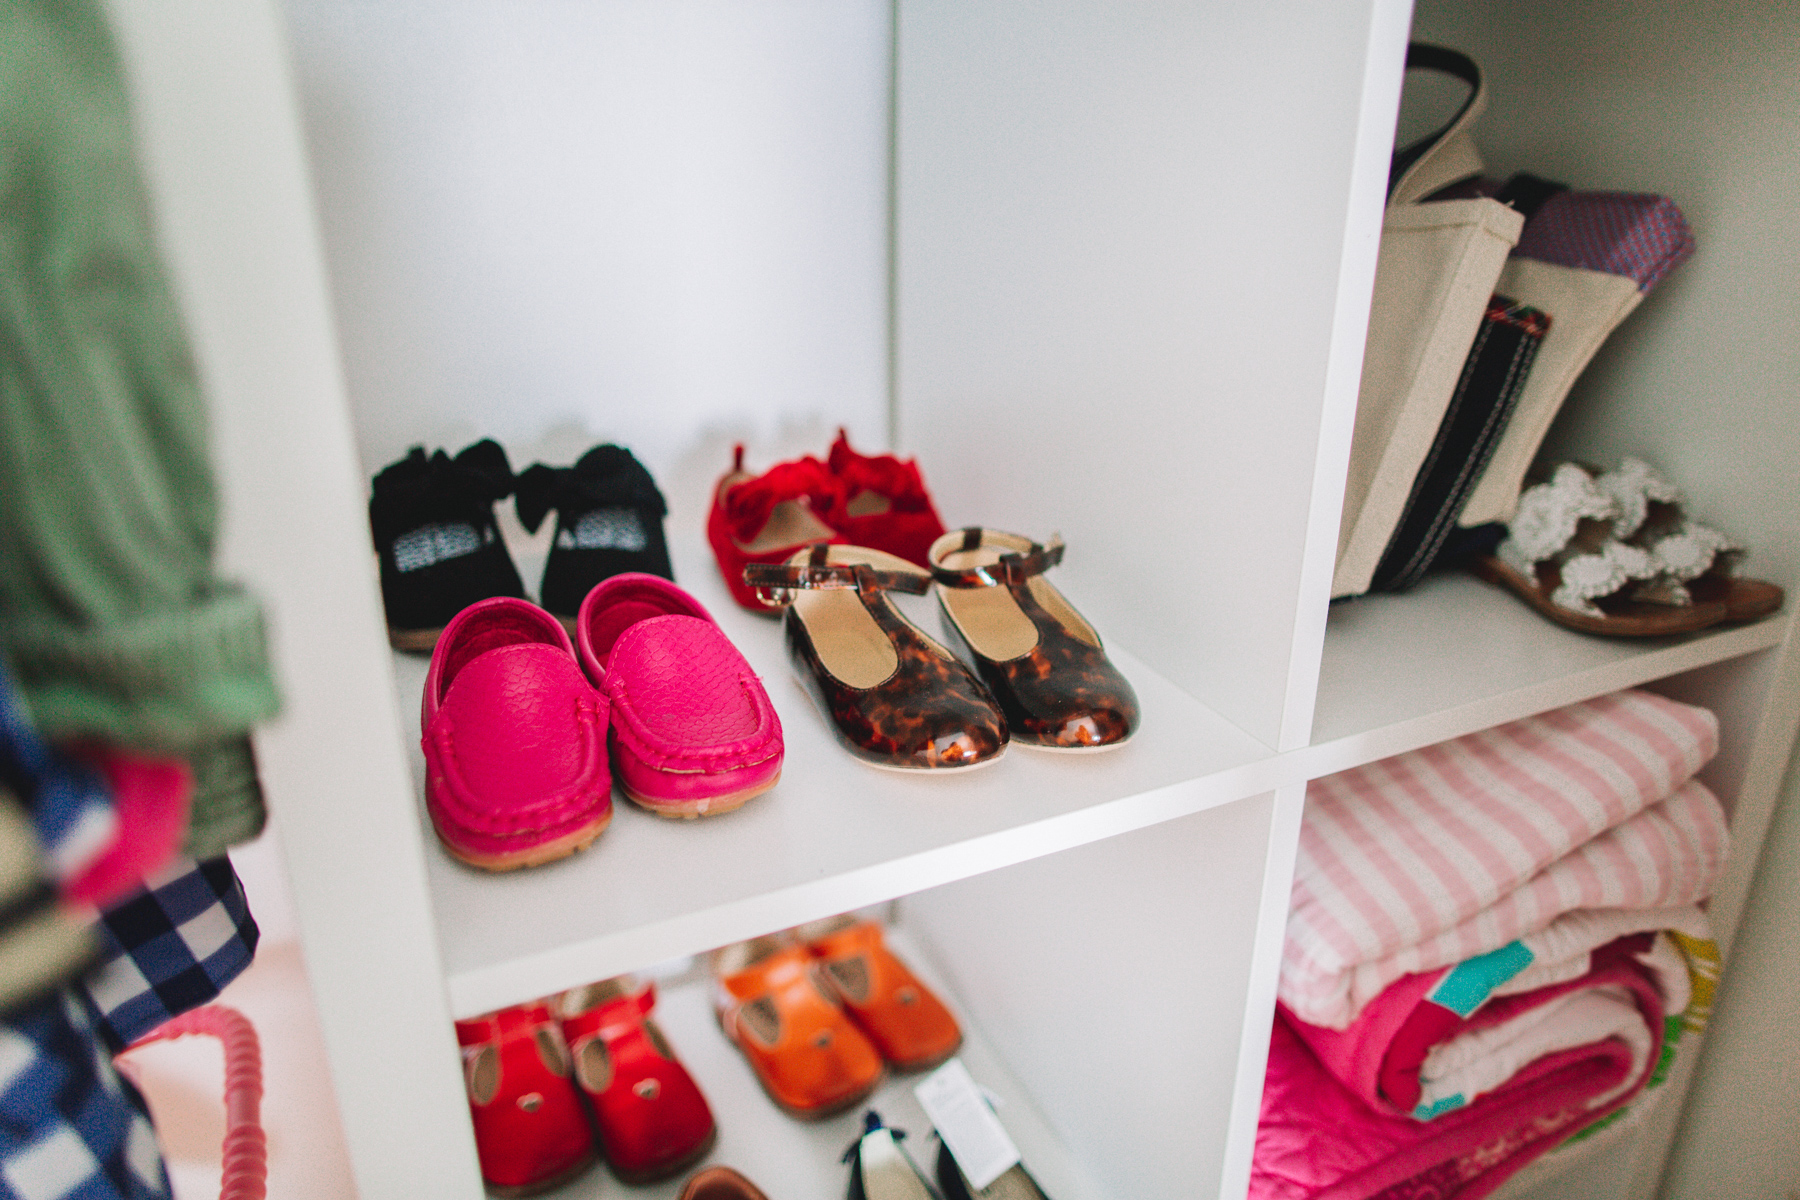 KonMari kids' rooms - shoes